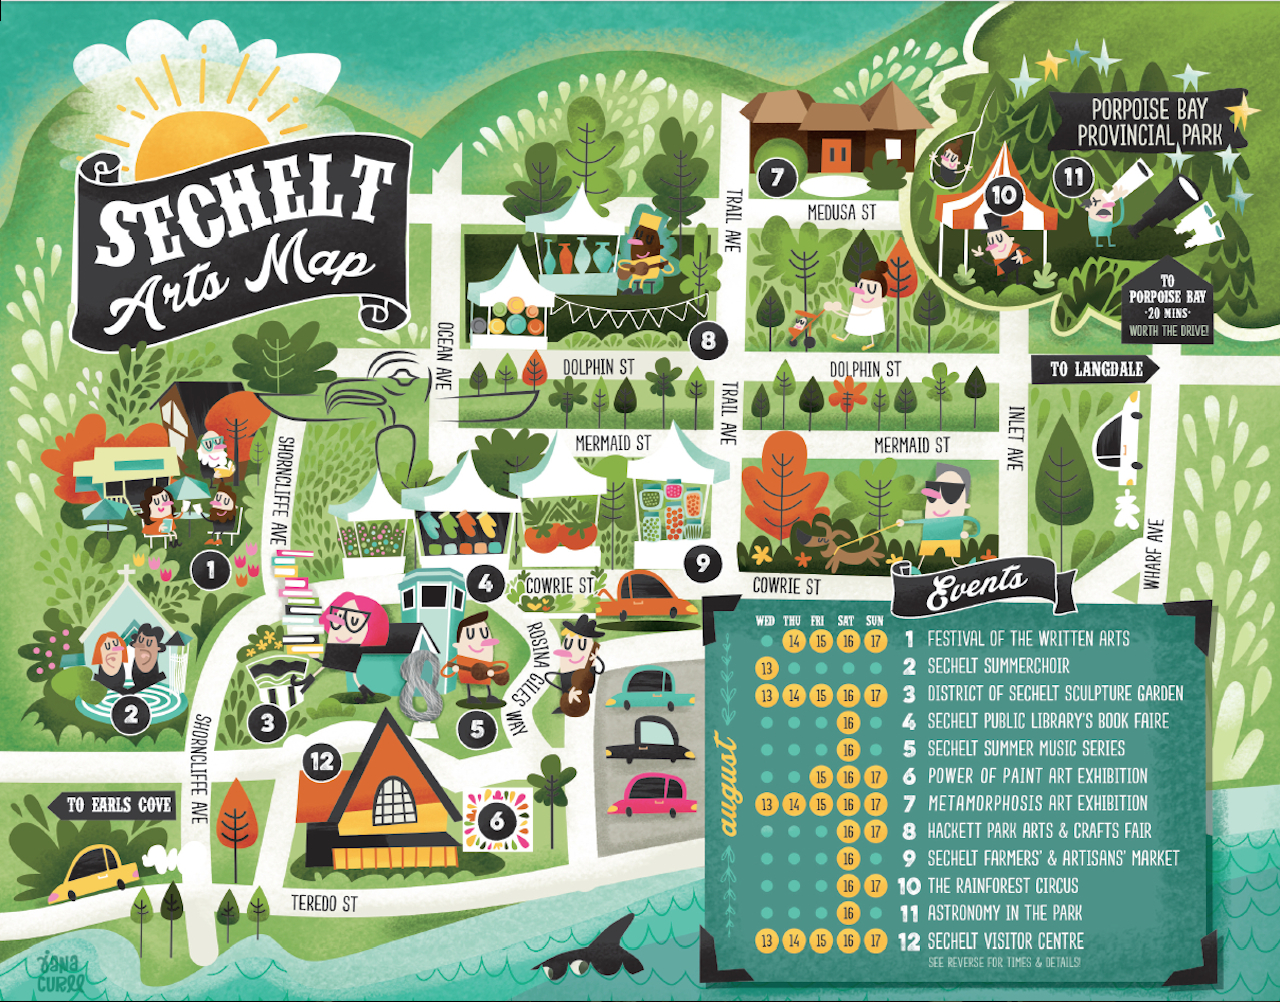 Sechelt Arts Map - Image